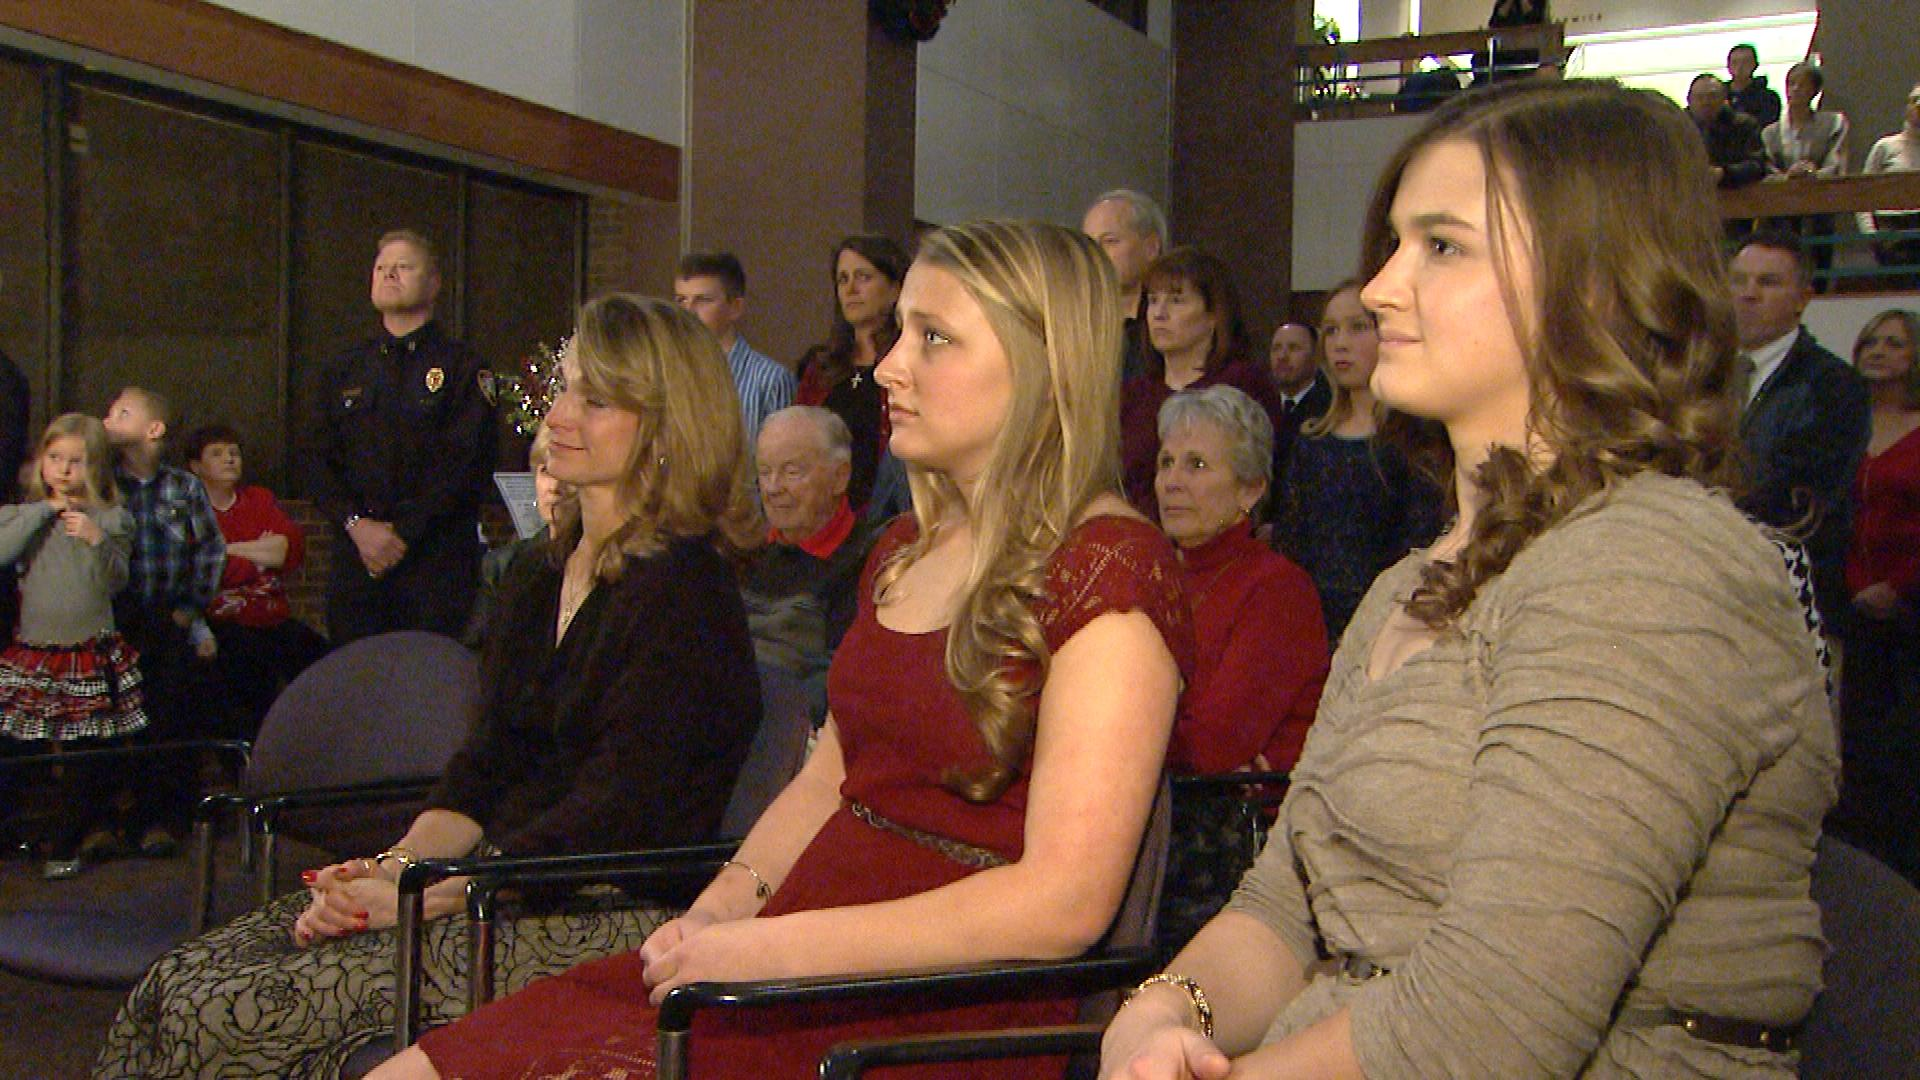 A.J. DeAndrea's wife and daughters (credit: CBS)